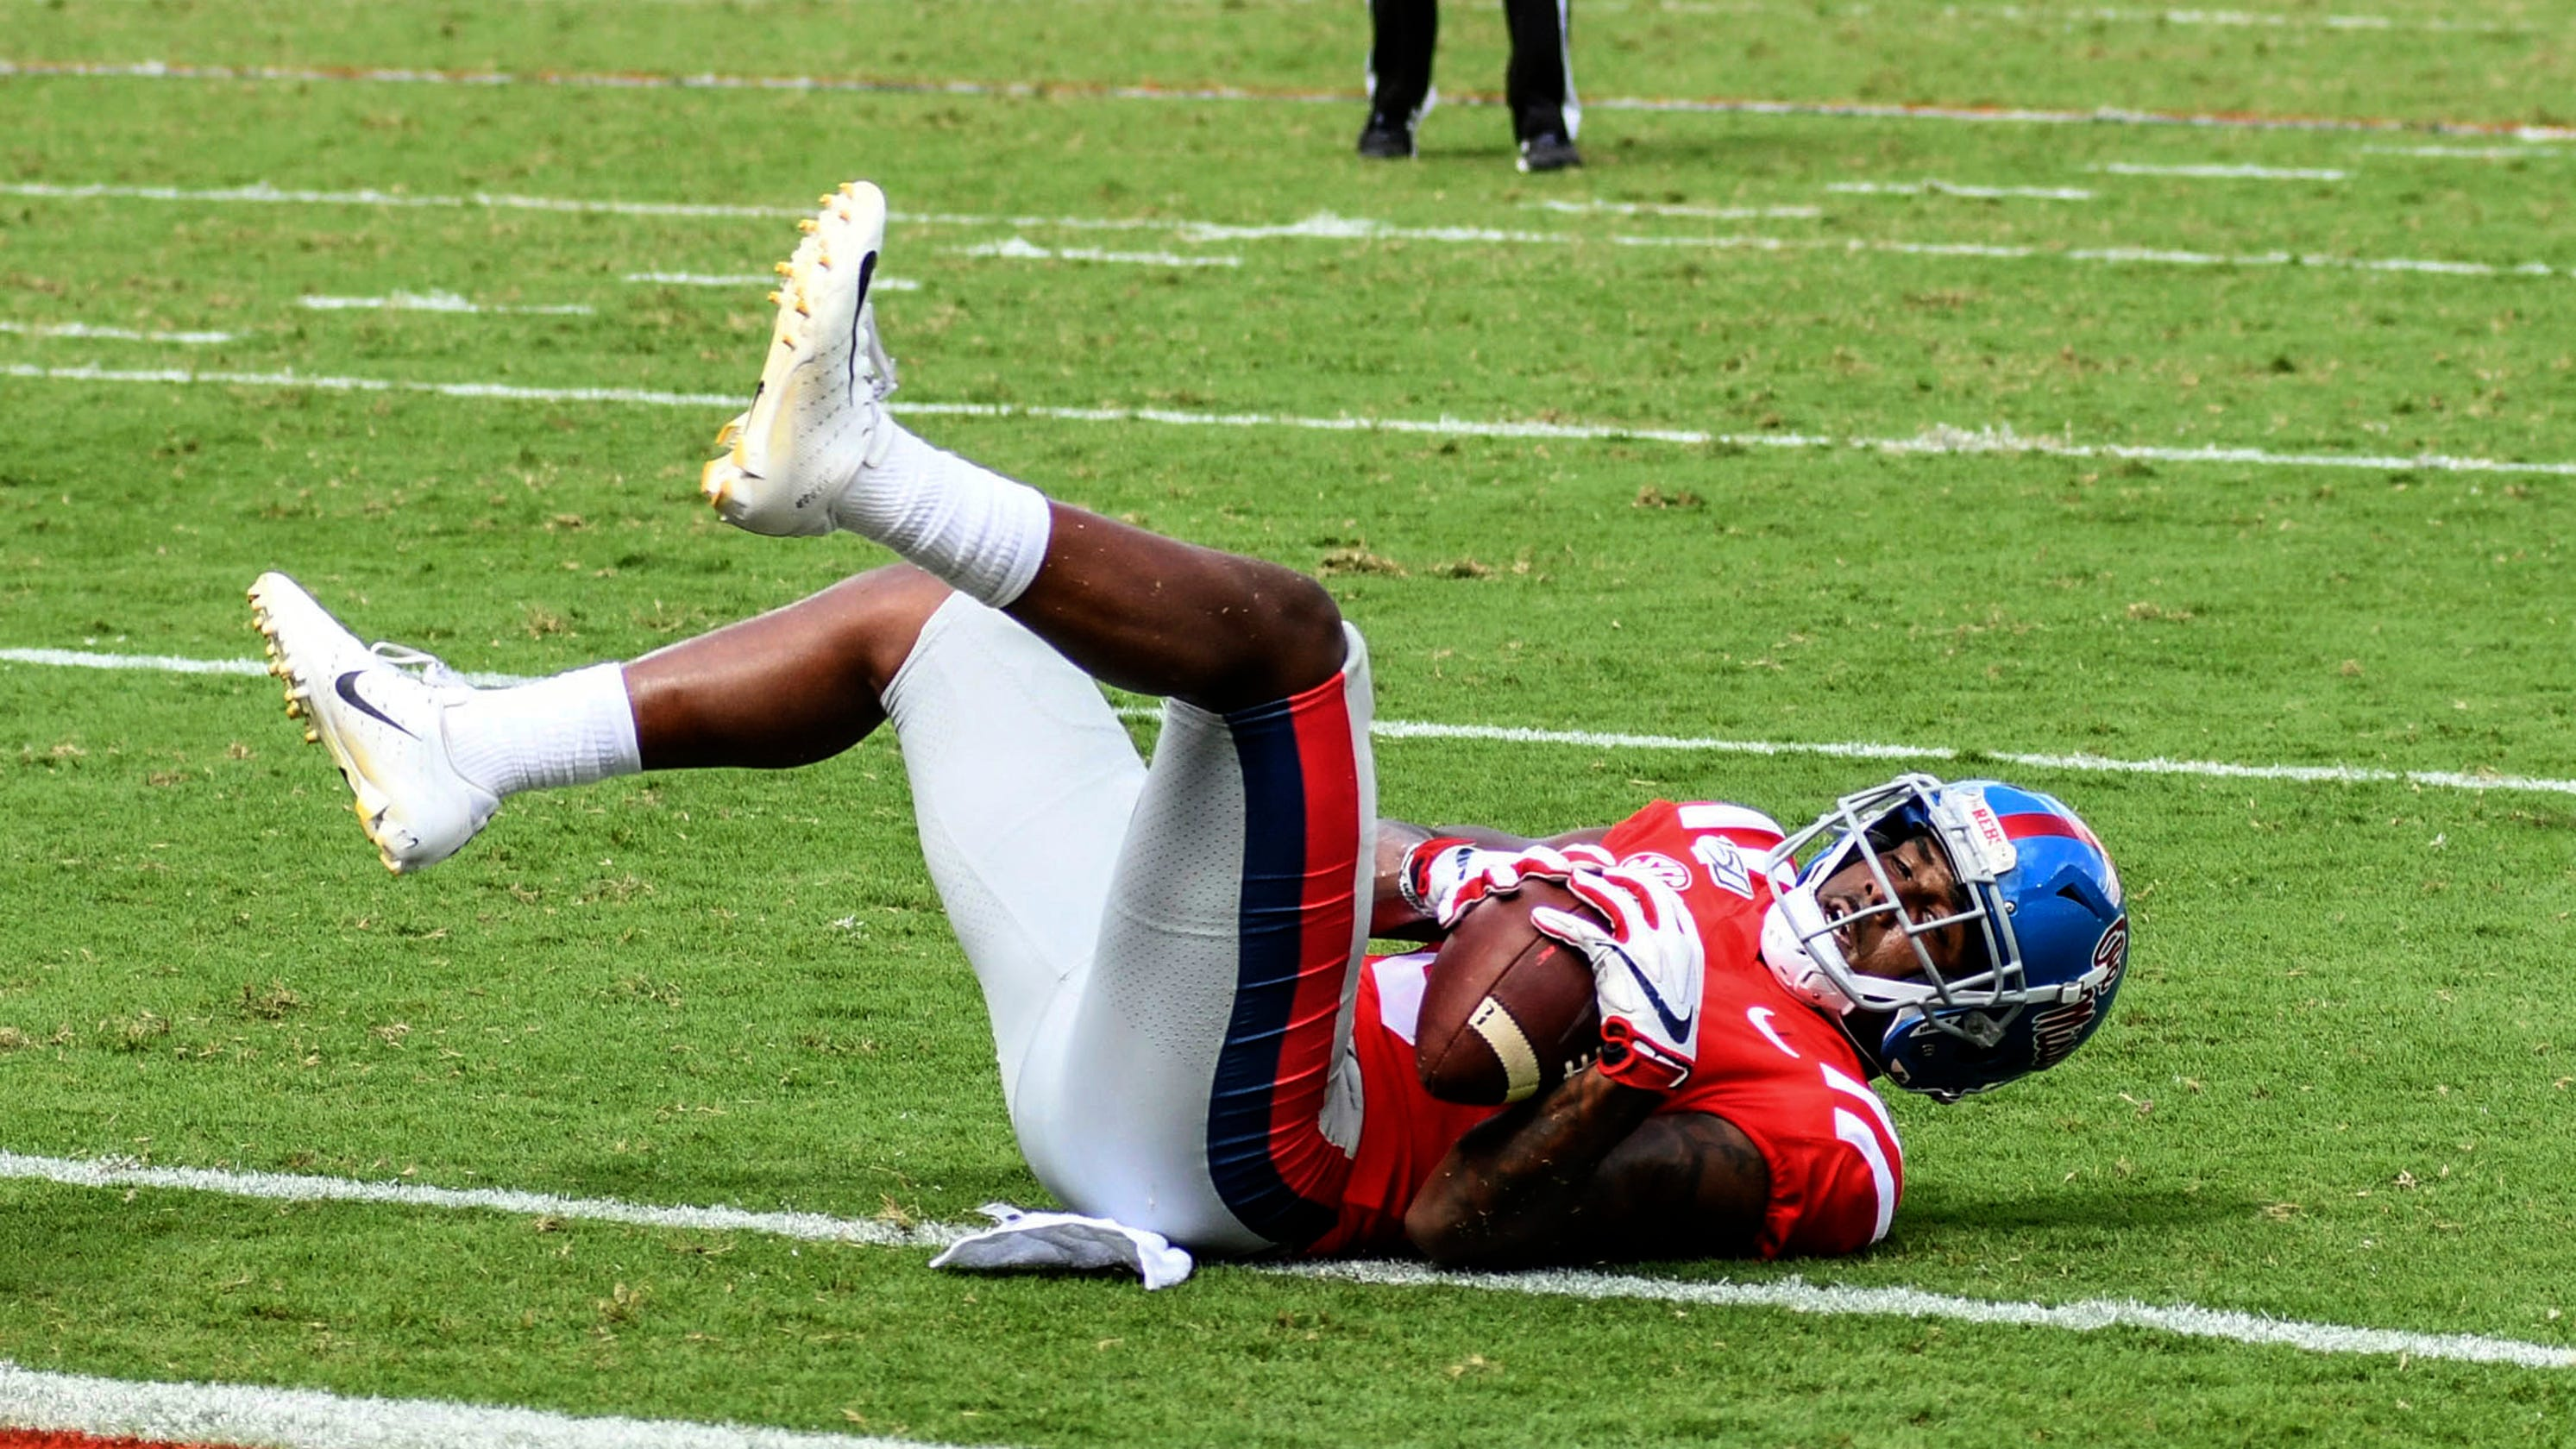 Touchdown or not? Ole Miss loss ends with controversial play